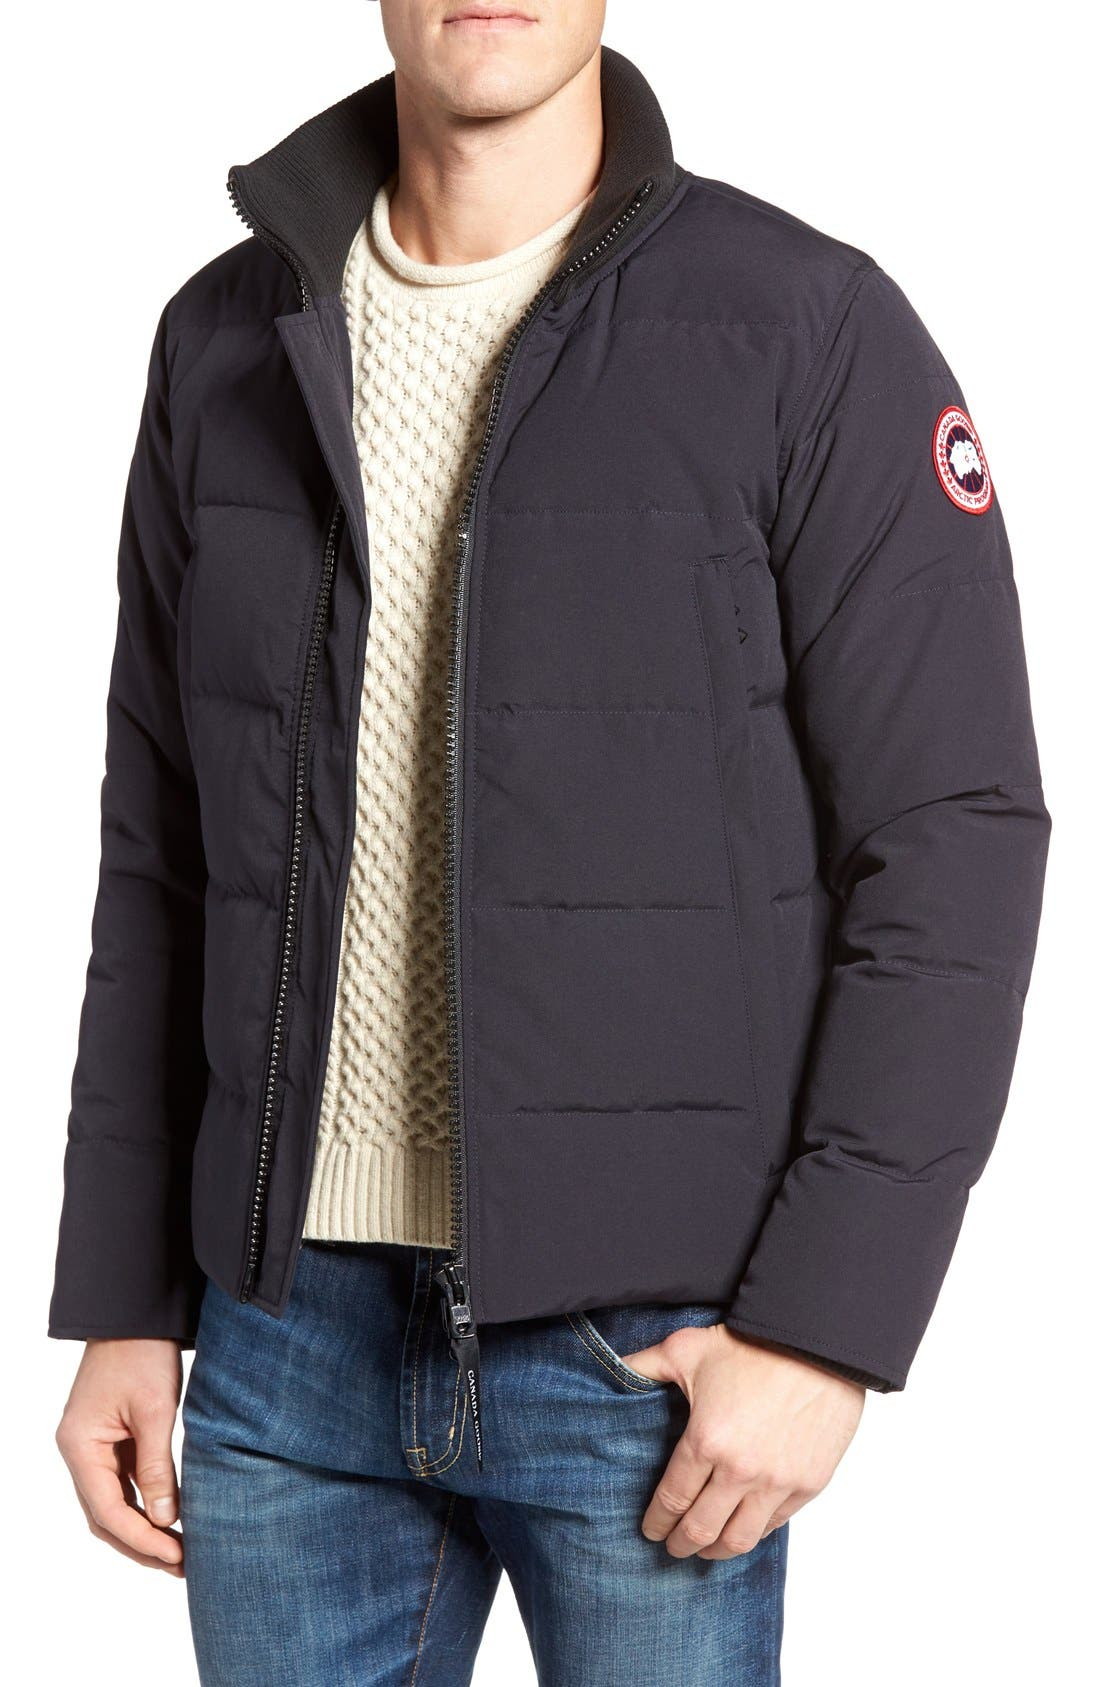 canada goose jacket worth it reddit